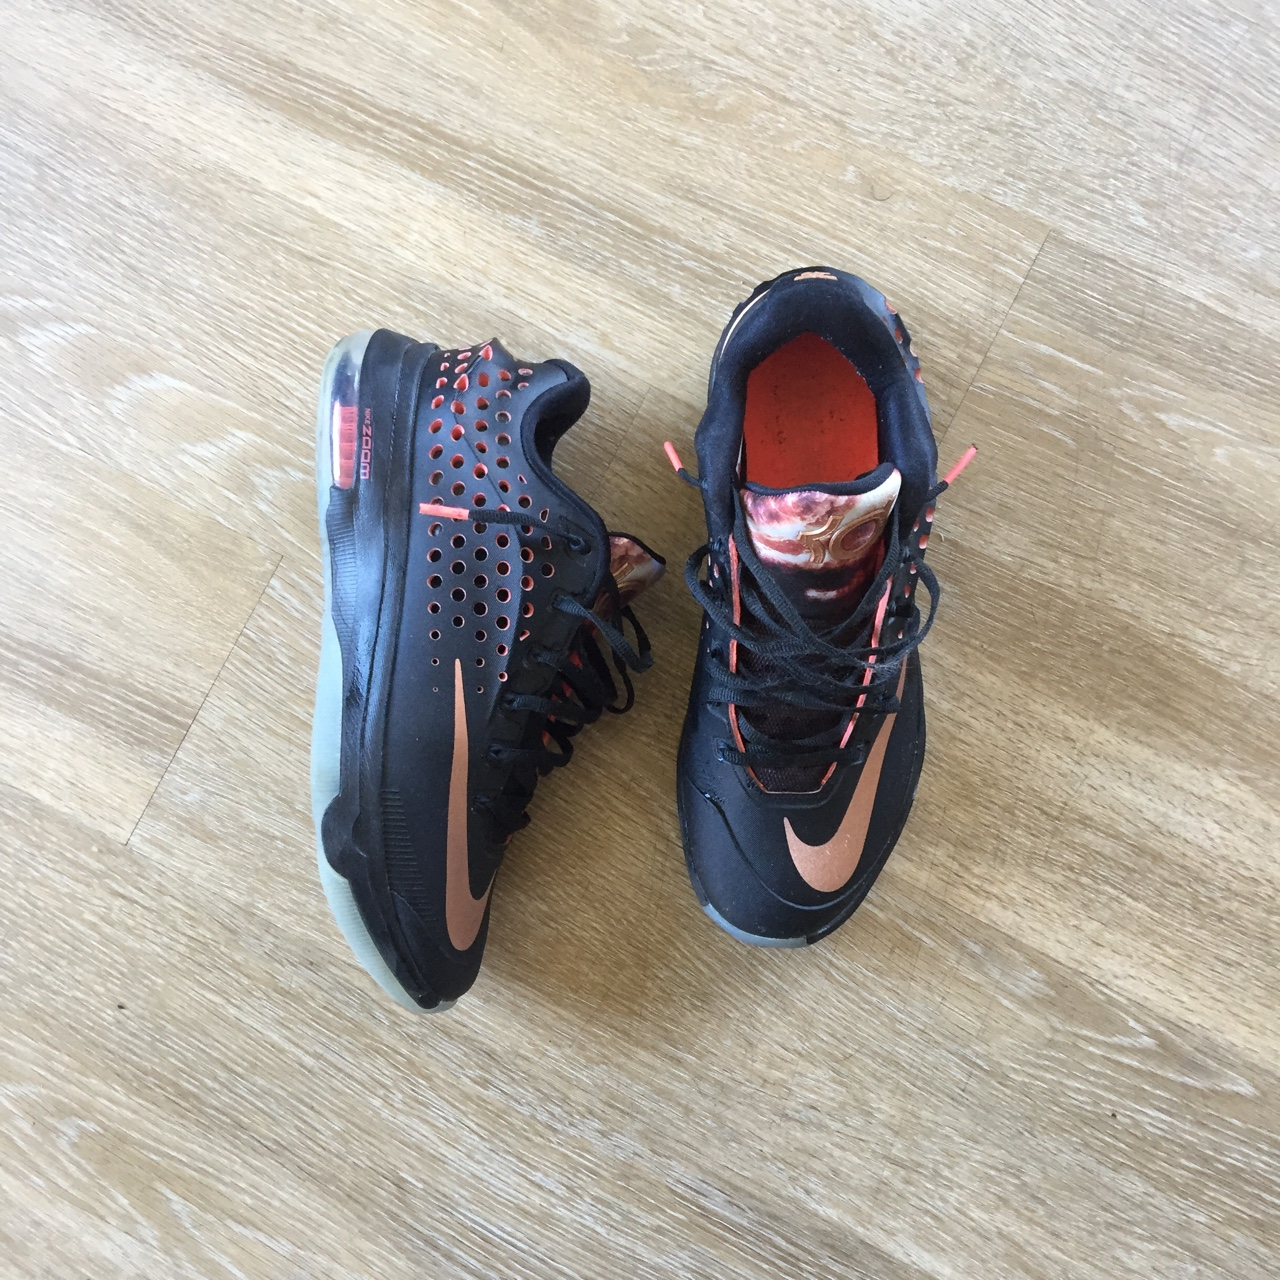 reputable site a8b23 6bc68 Nike KD Kevin Durant Elite 7 VII. These shoes are in... - Depop